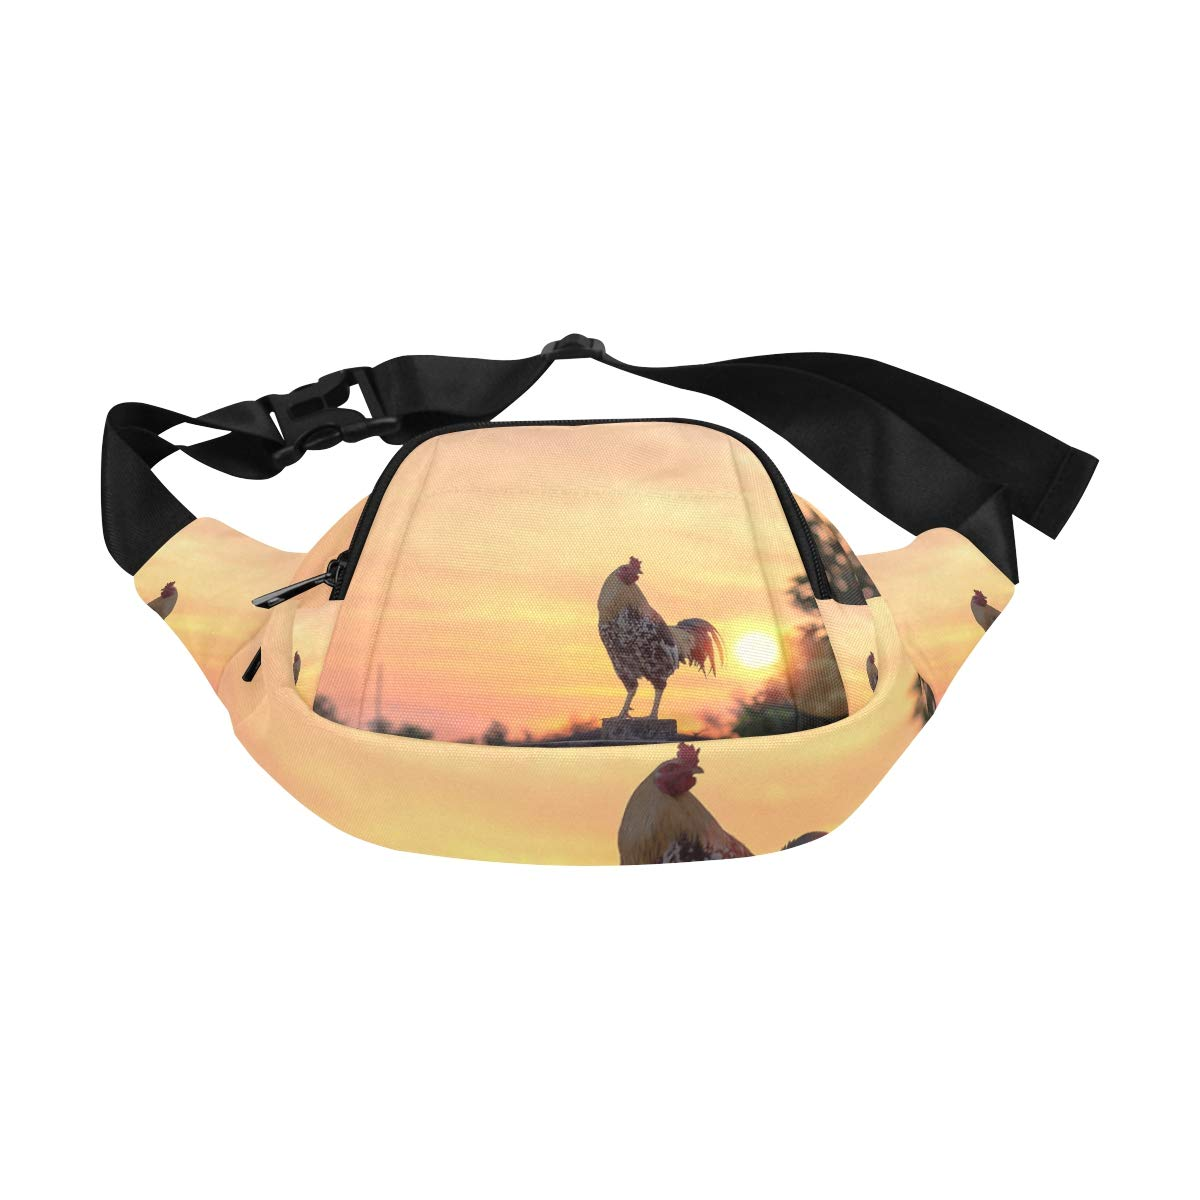 Colorful Rooster In The Grassland Fenny Packs Waist Bags Adjustable Belt Waterproof Nylon Travel Running Sport Vacation Party For Men Women Boys Girls Kids